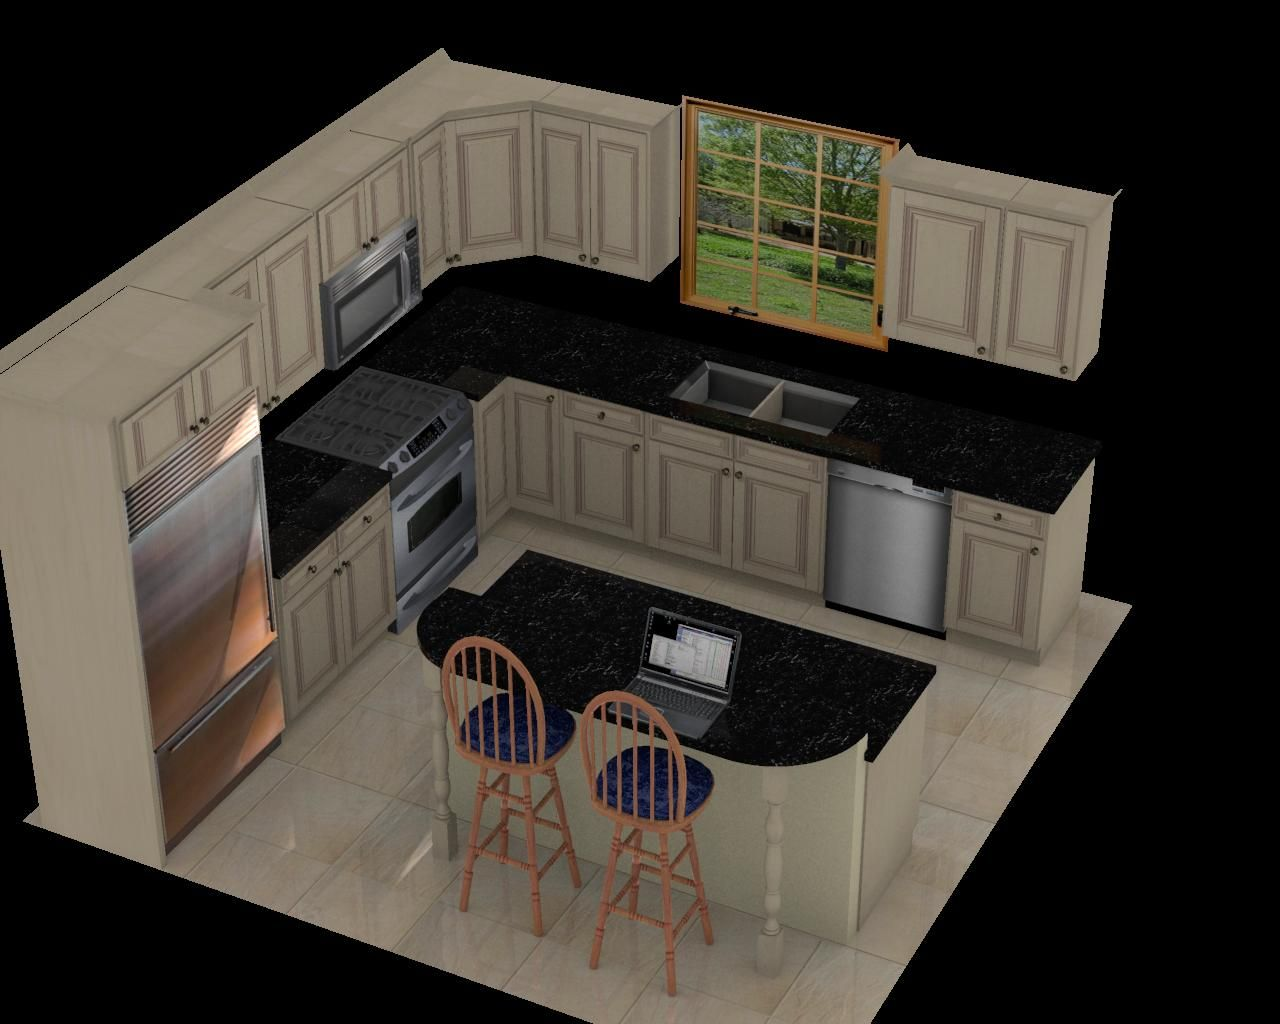 kitchen design 9 x 12 luxury 12x12 kitchen layout with island 51 for with 12x12 488